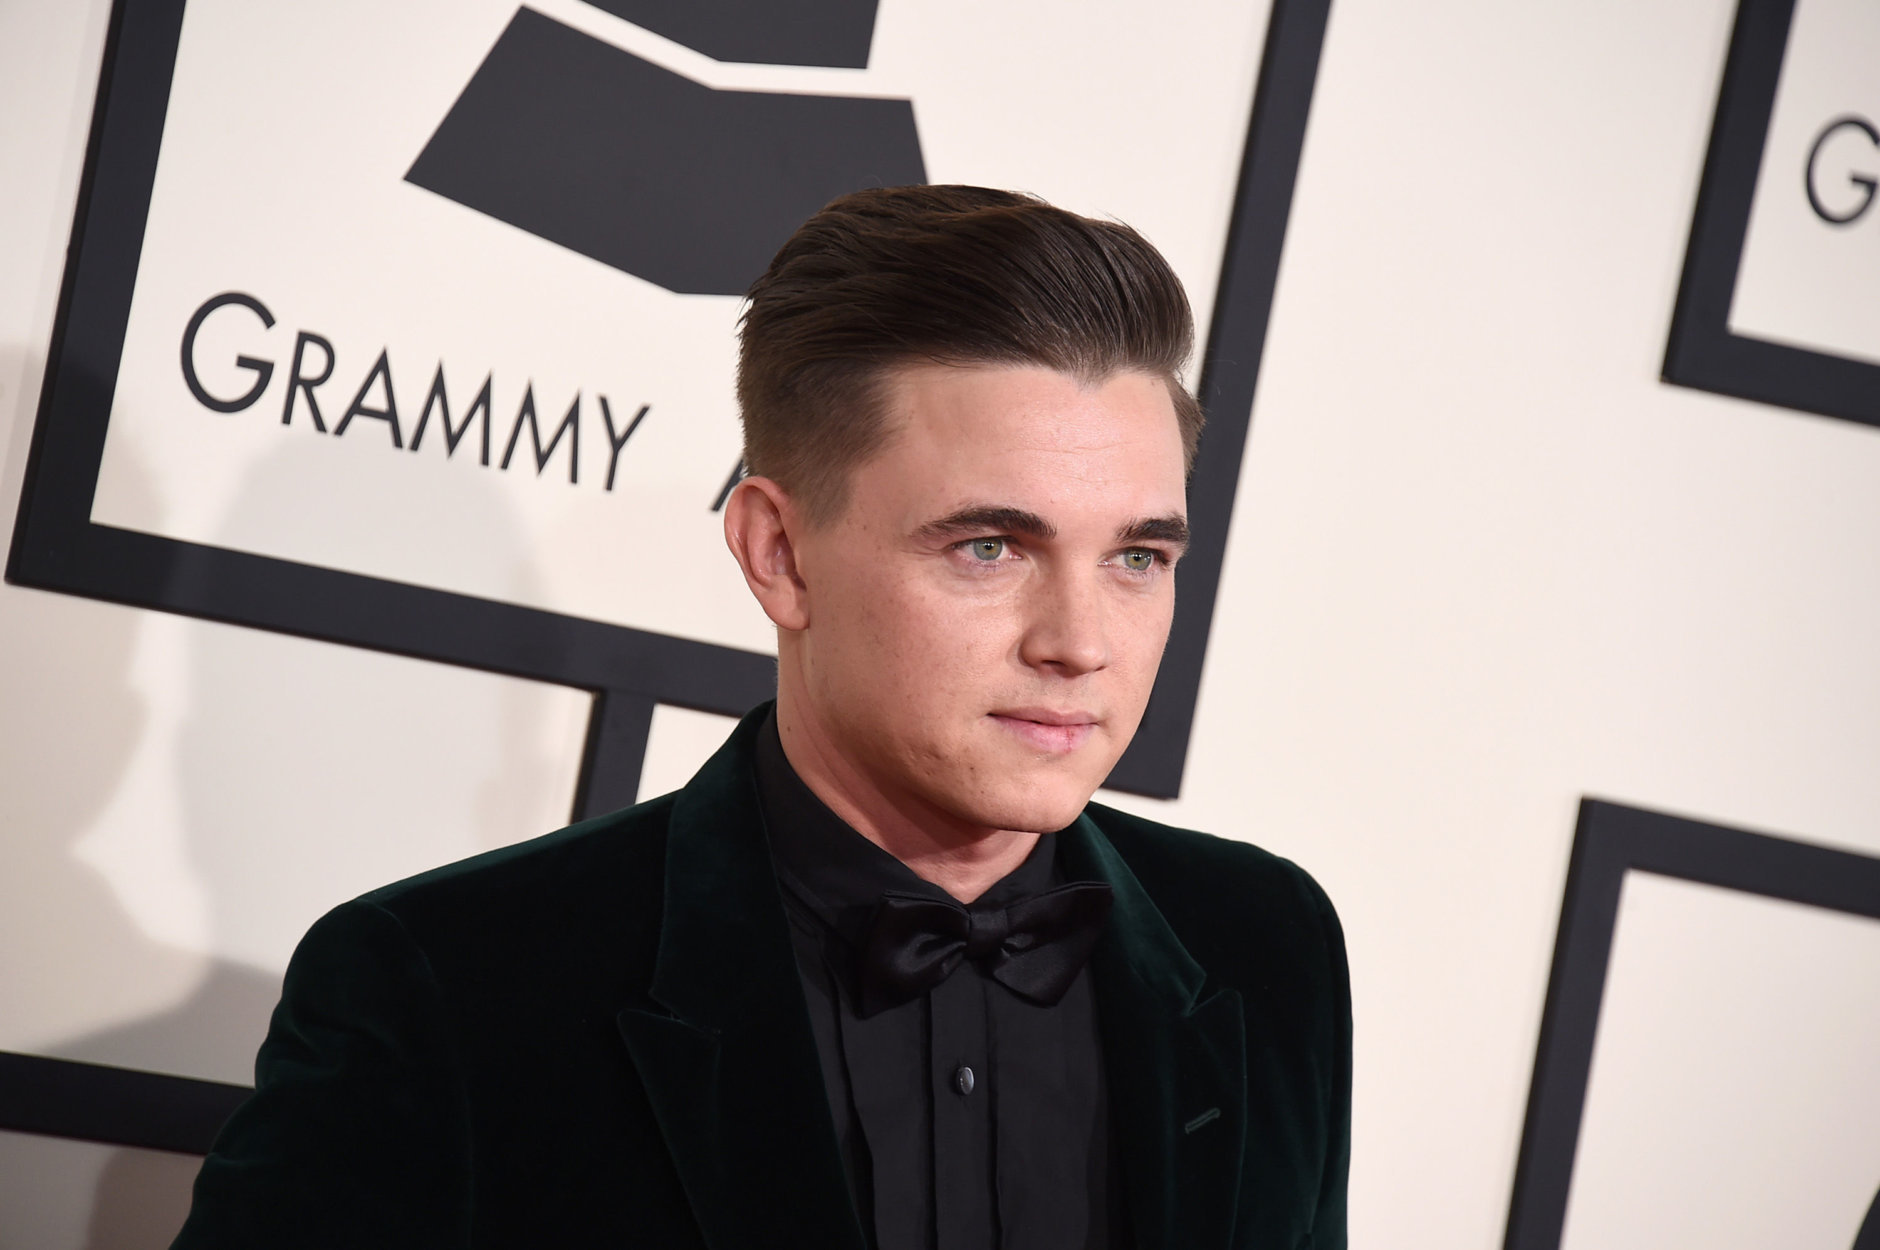 Jesse McCartney arrives at the 57th annual Grammy Awards at the Staples Center on Sunday, Feb. 8, 2015, in Los Angeles. (Photo by Jordan Strauss/Invision/AP)